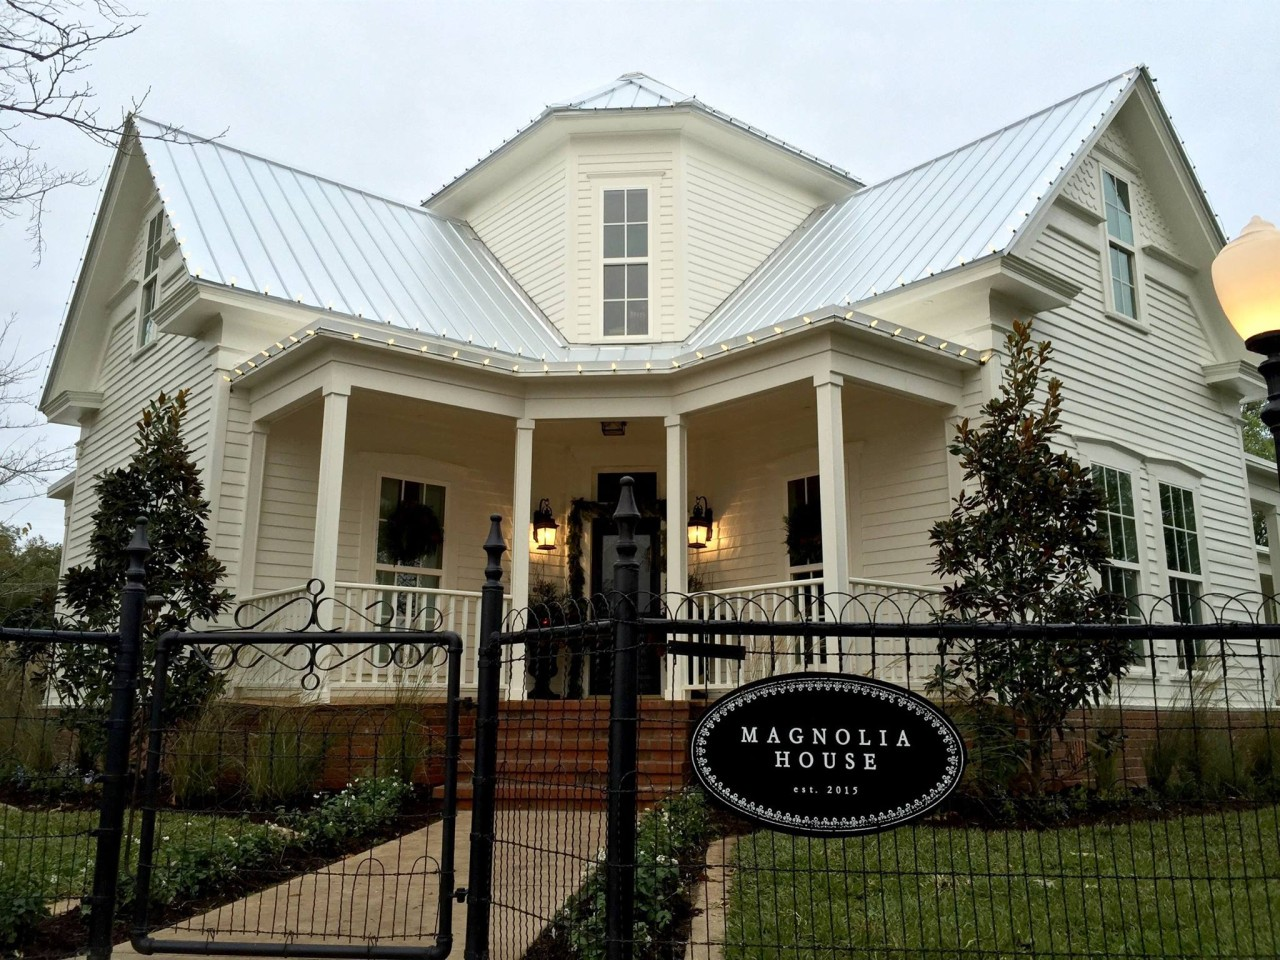 B&b Houses Magnolia House | Waco & The Heart Of Texas